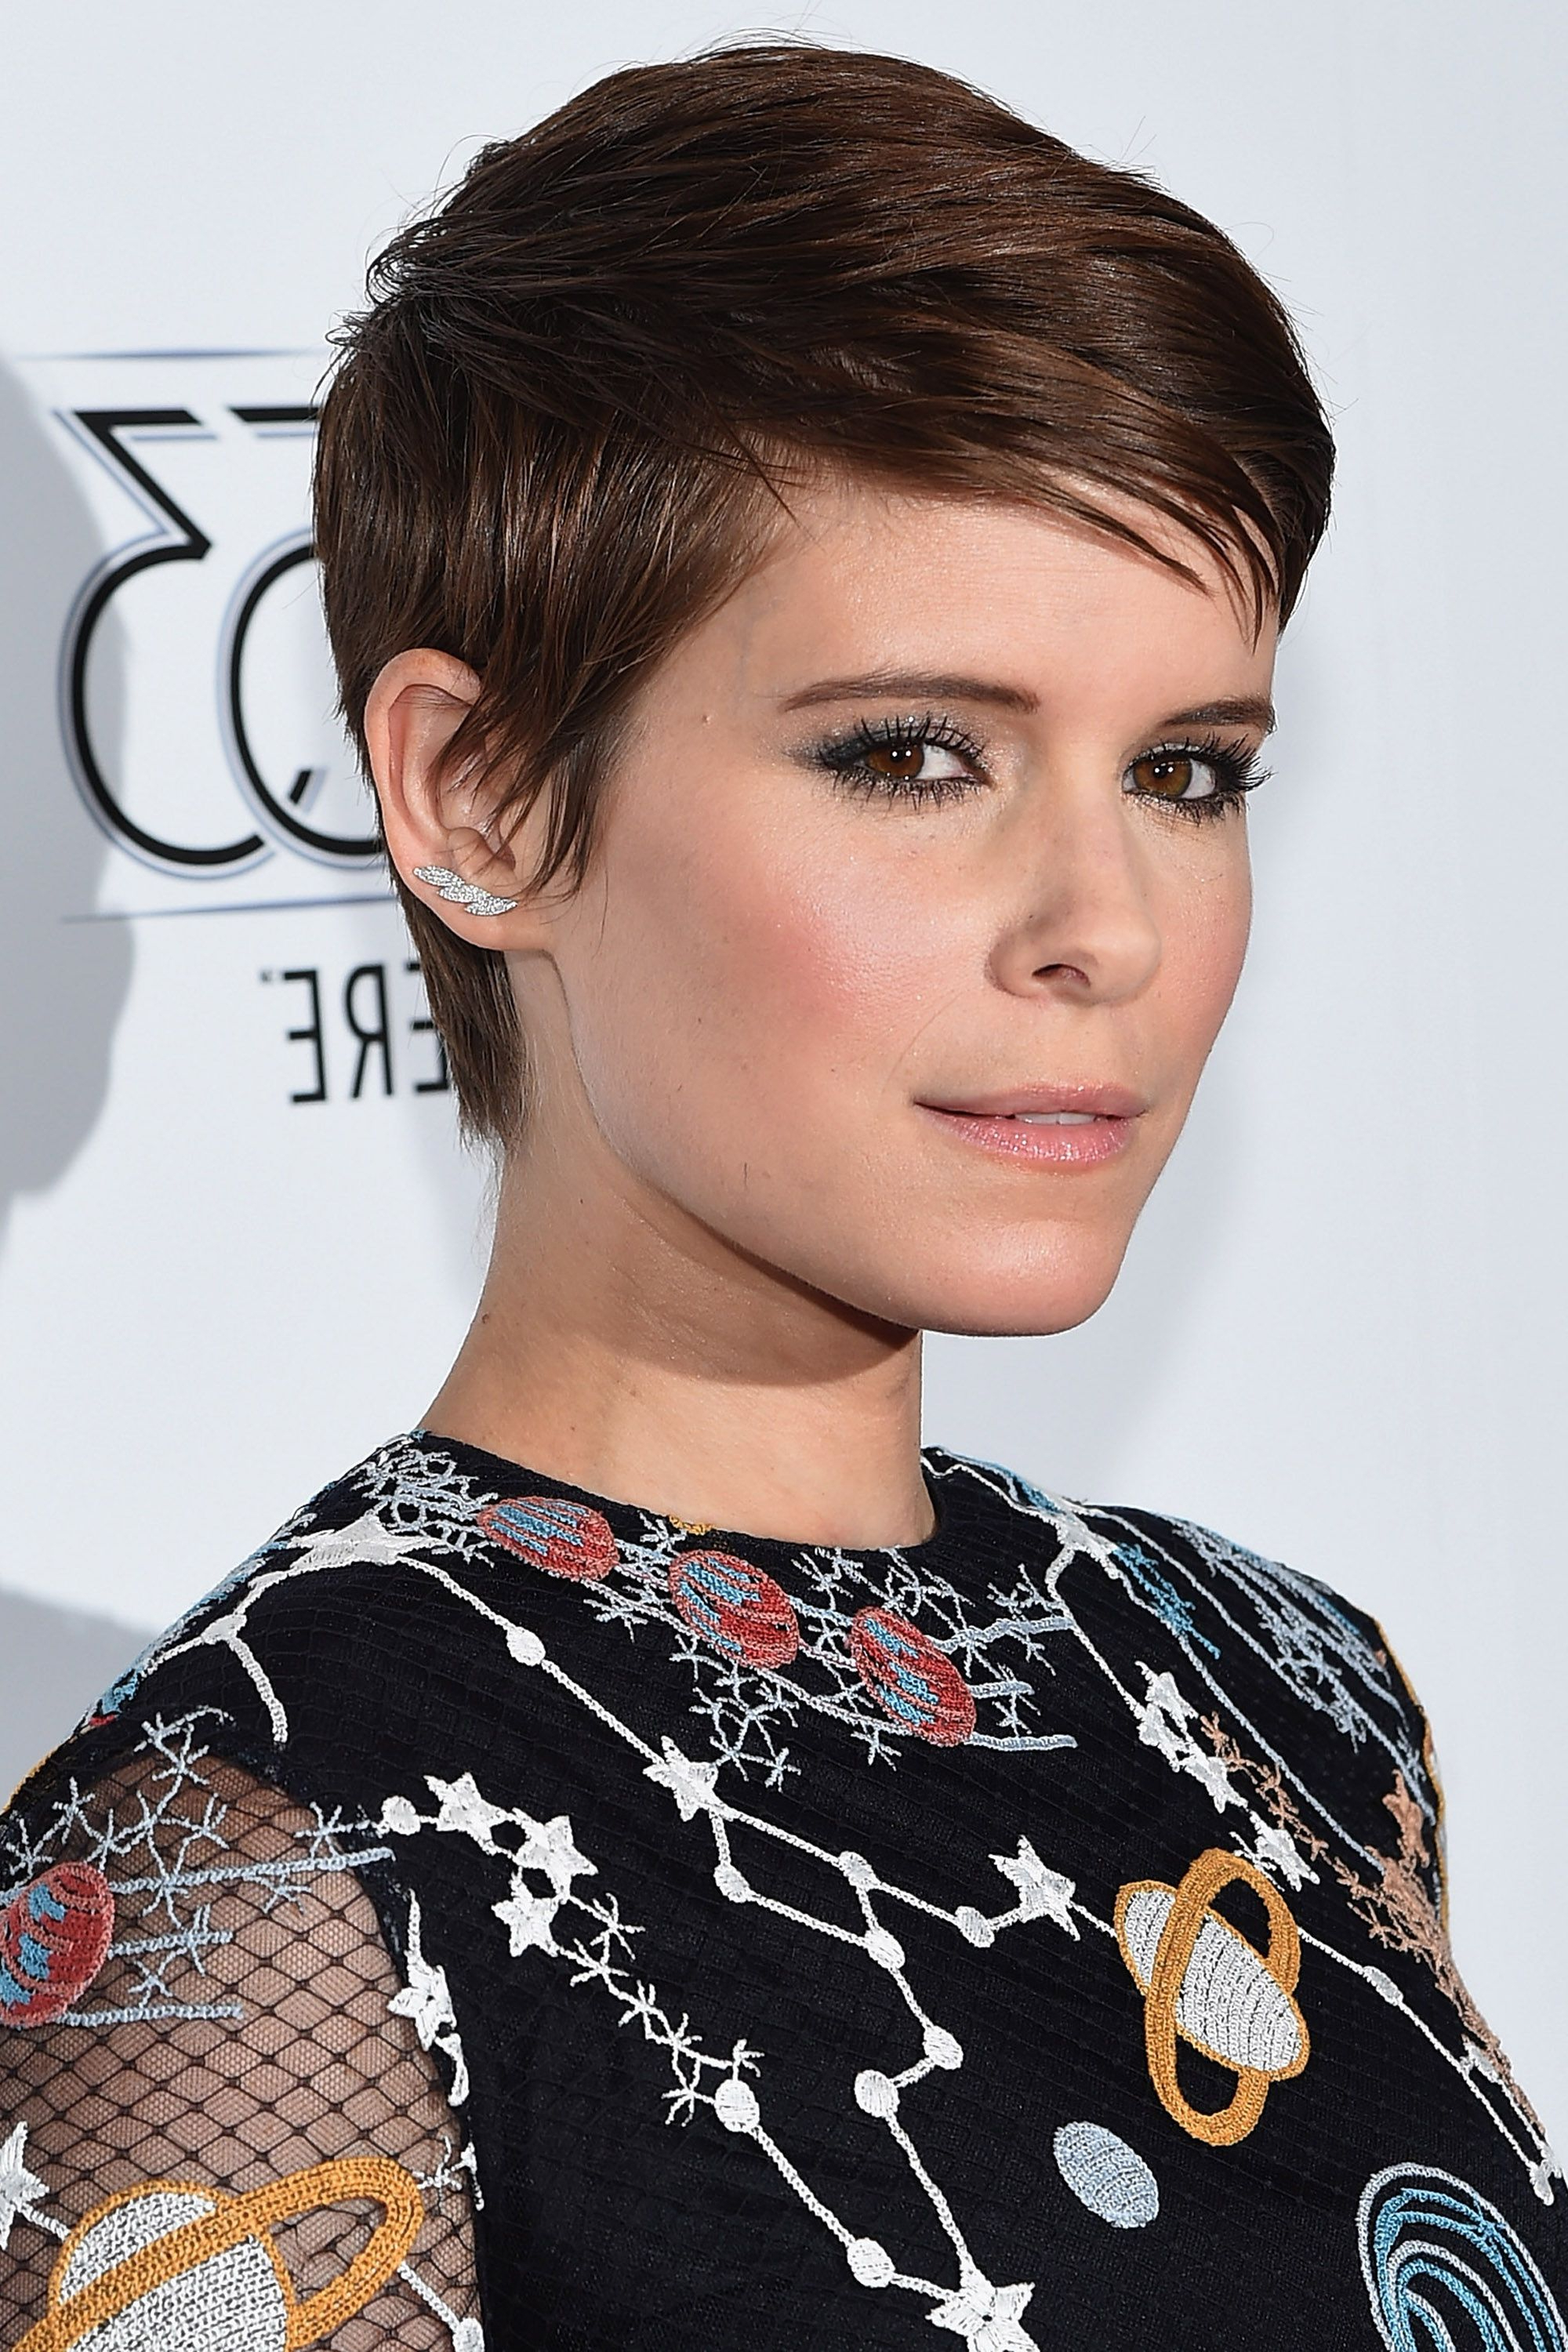 50+ Pixie Cuts We Love For 2018 – Short Pixie Hairstyles From With Regard To Trendy Short Hair Cuts (View 25 of 25)